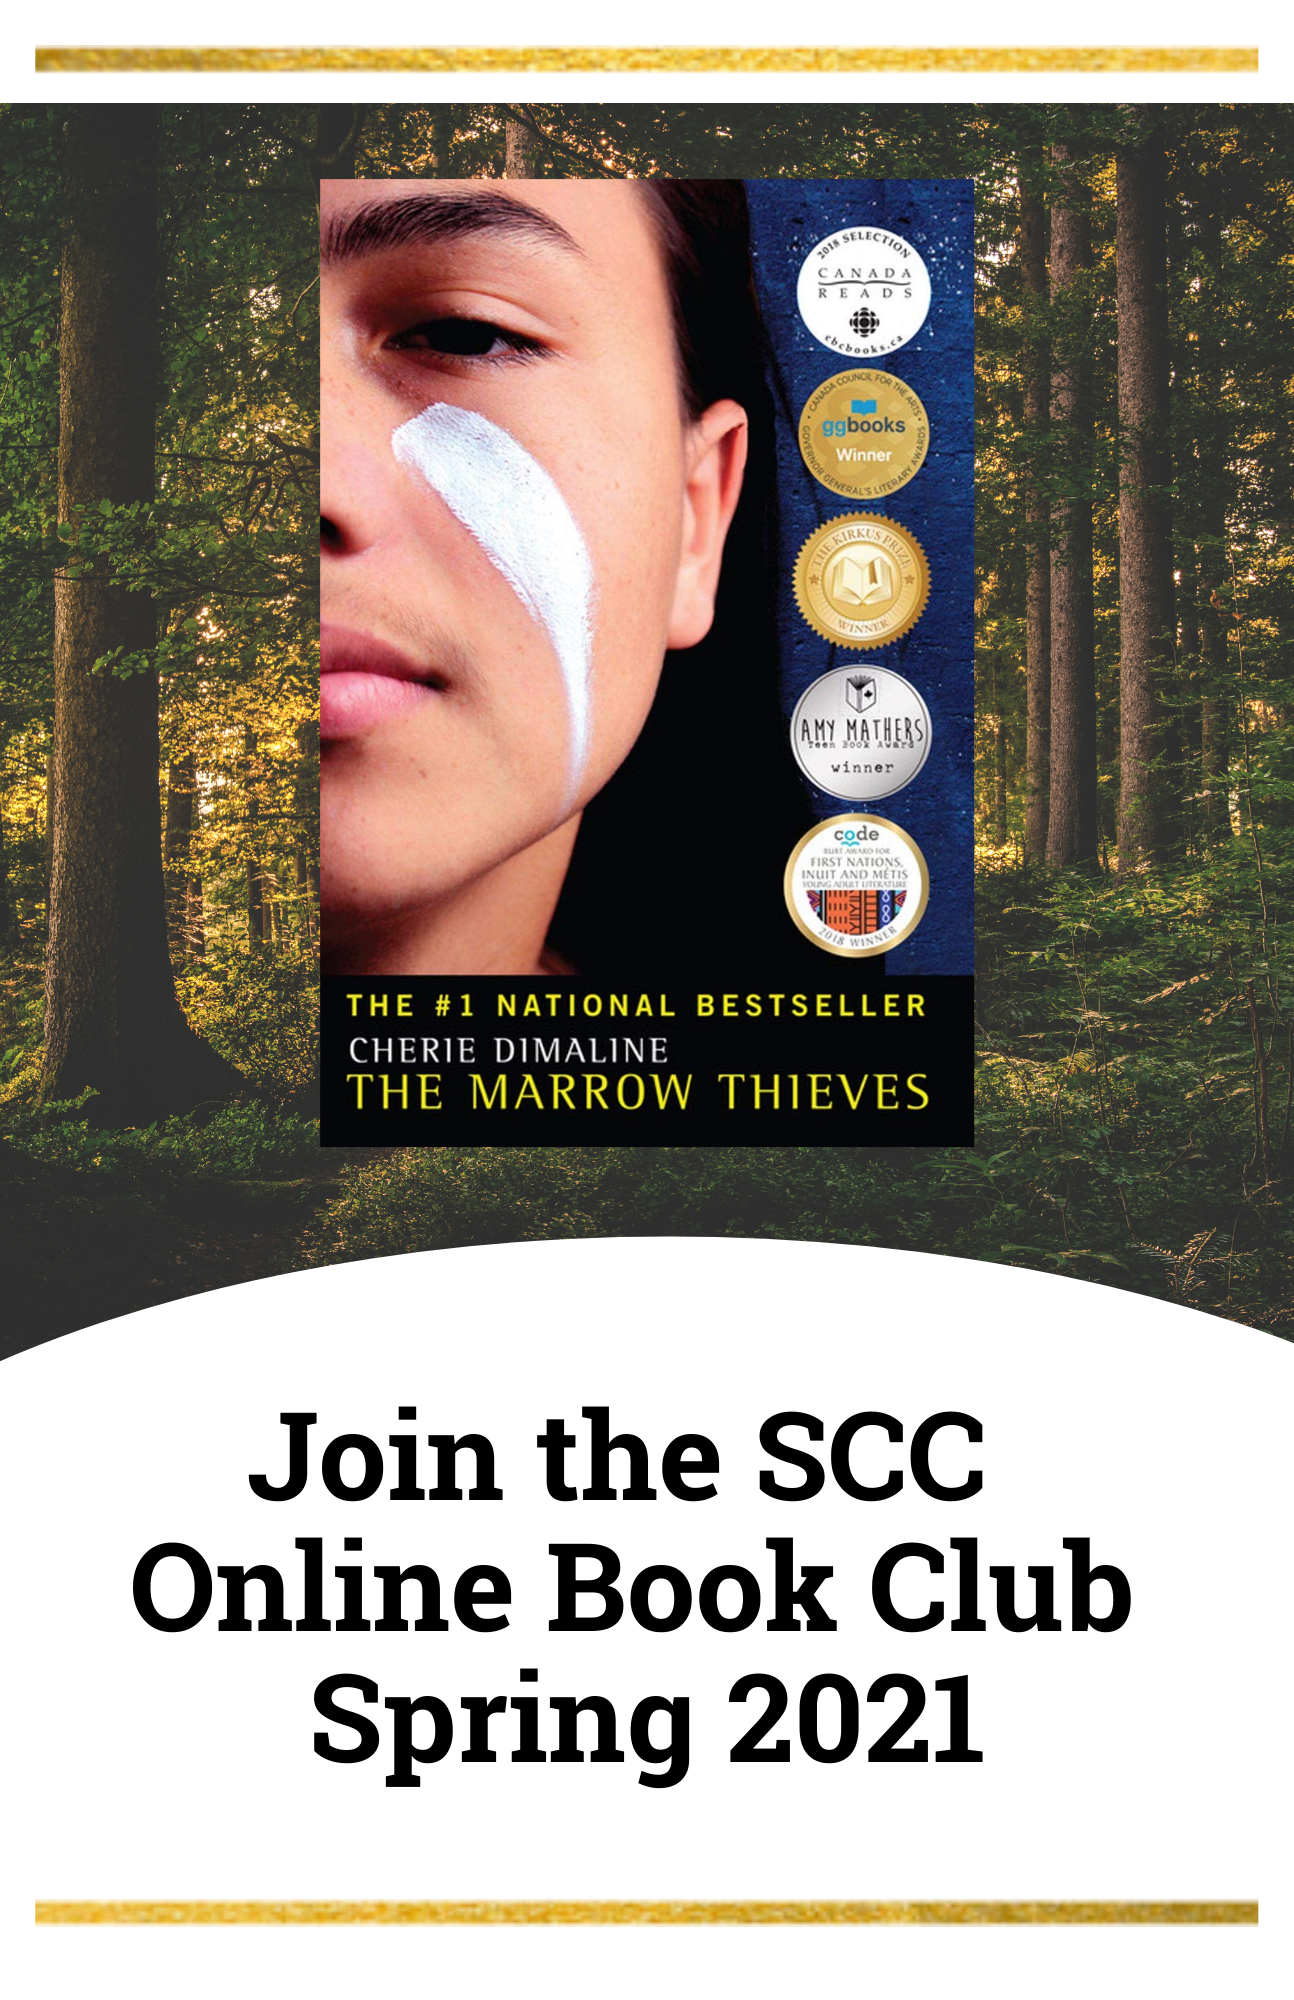 Join the SCC Book Club Spring 2021 Marrow Thieves